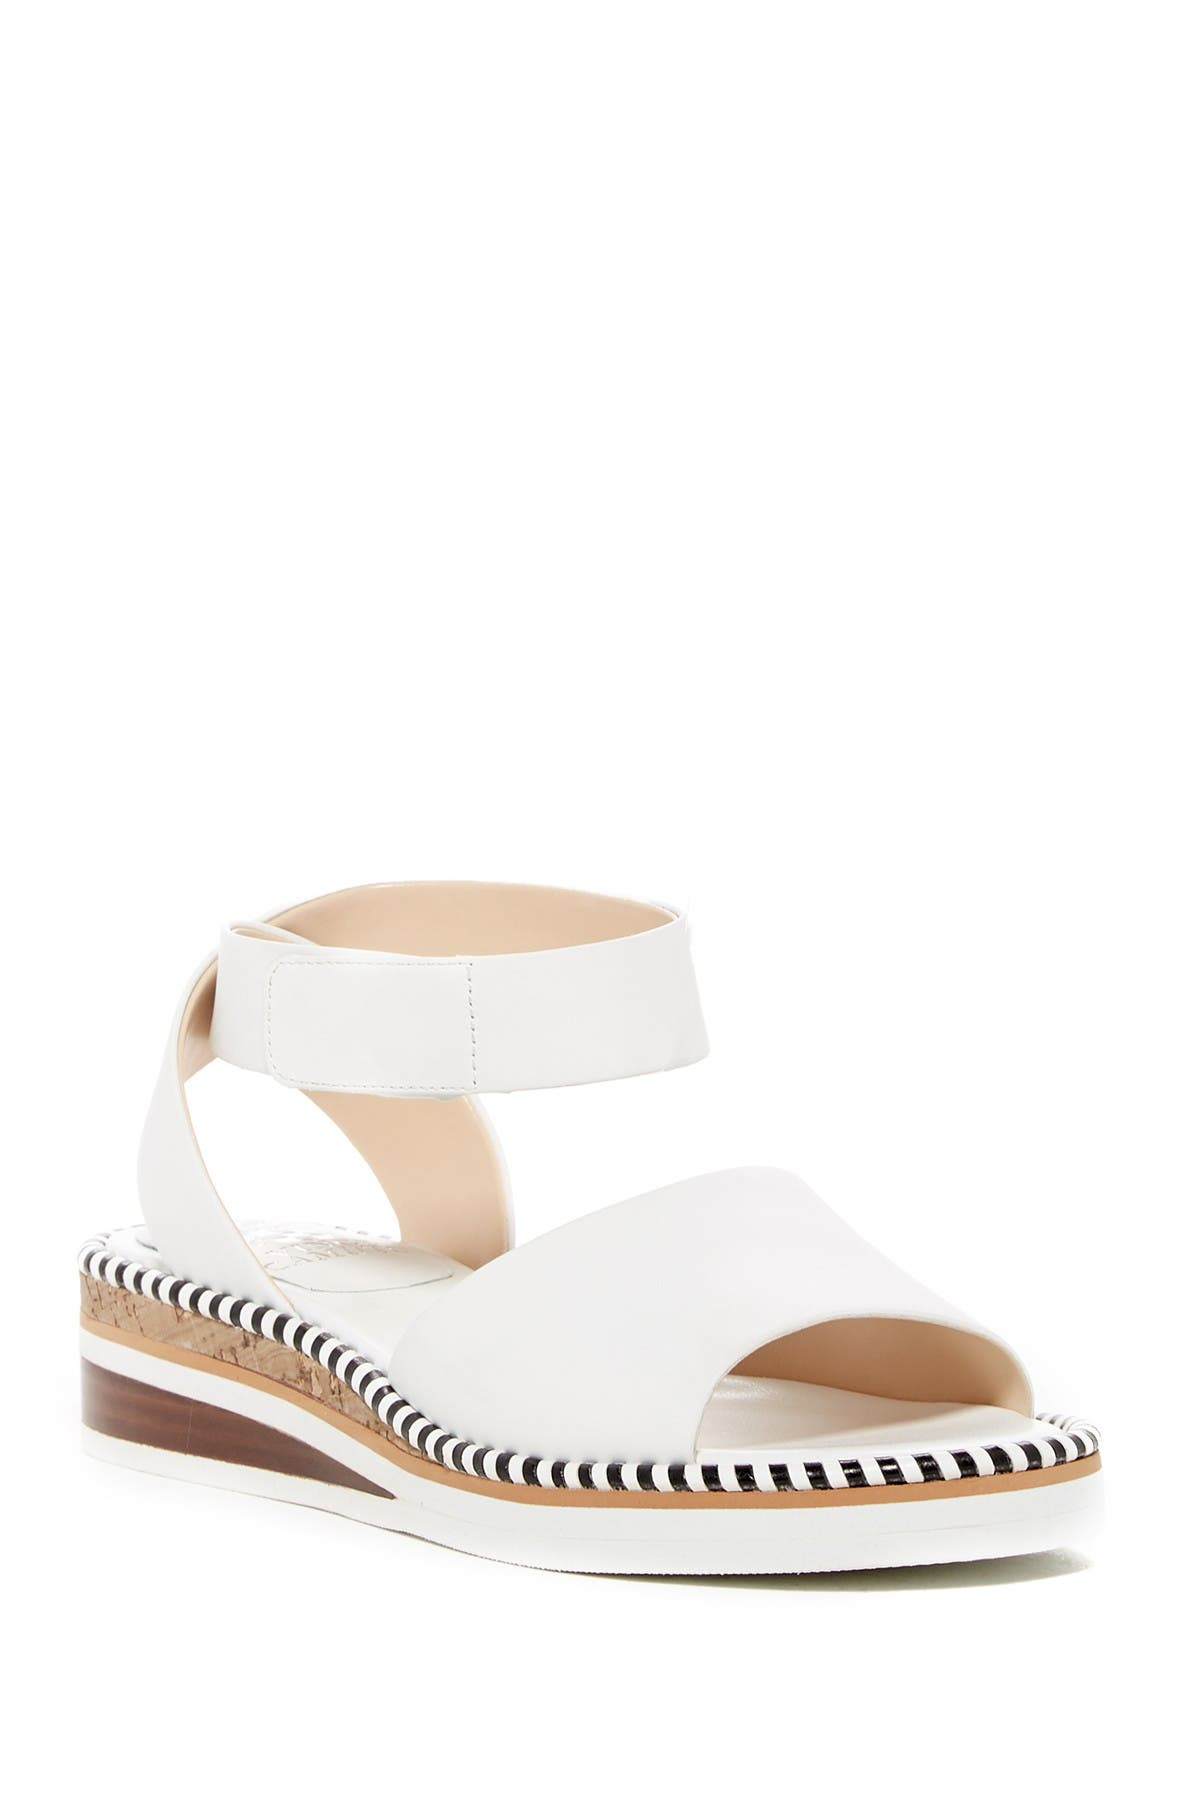 Image of Vince Camuto Mariena Leather Wedge